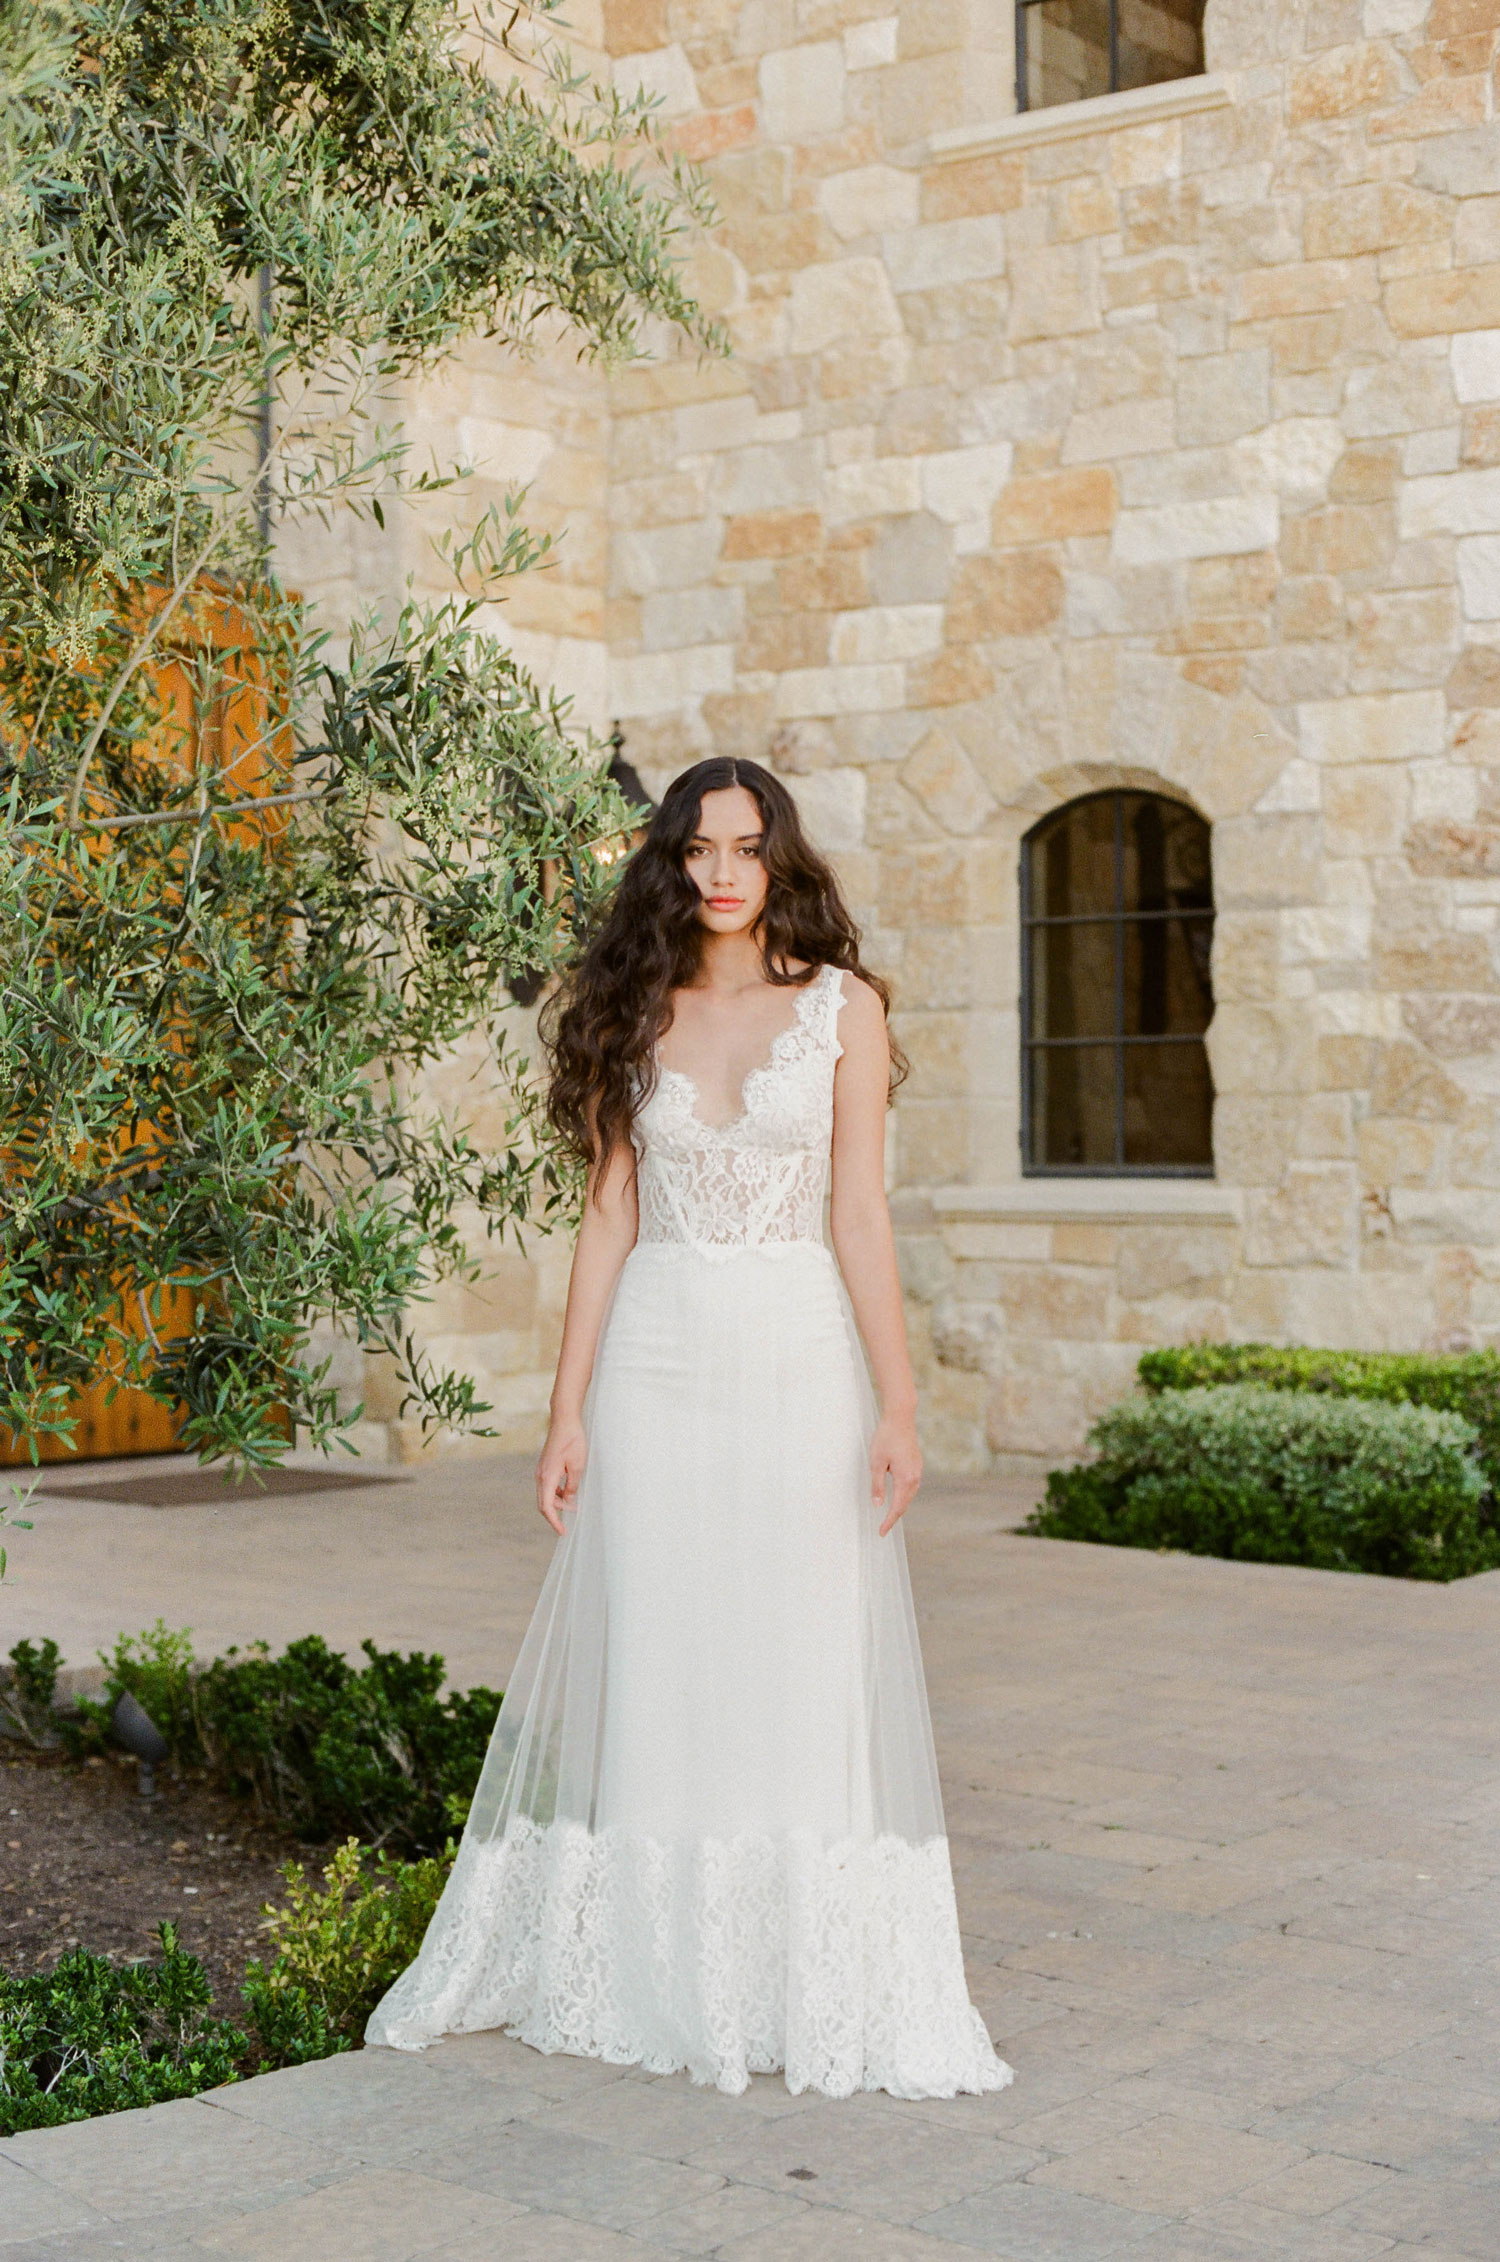 Claire Pettibone Romantique 2018 The Vineyard Collection Chardonnay v neck lace wedding dress